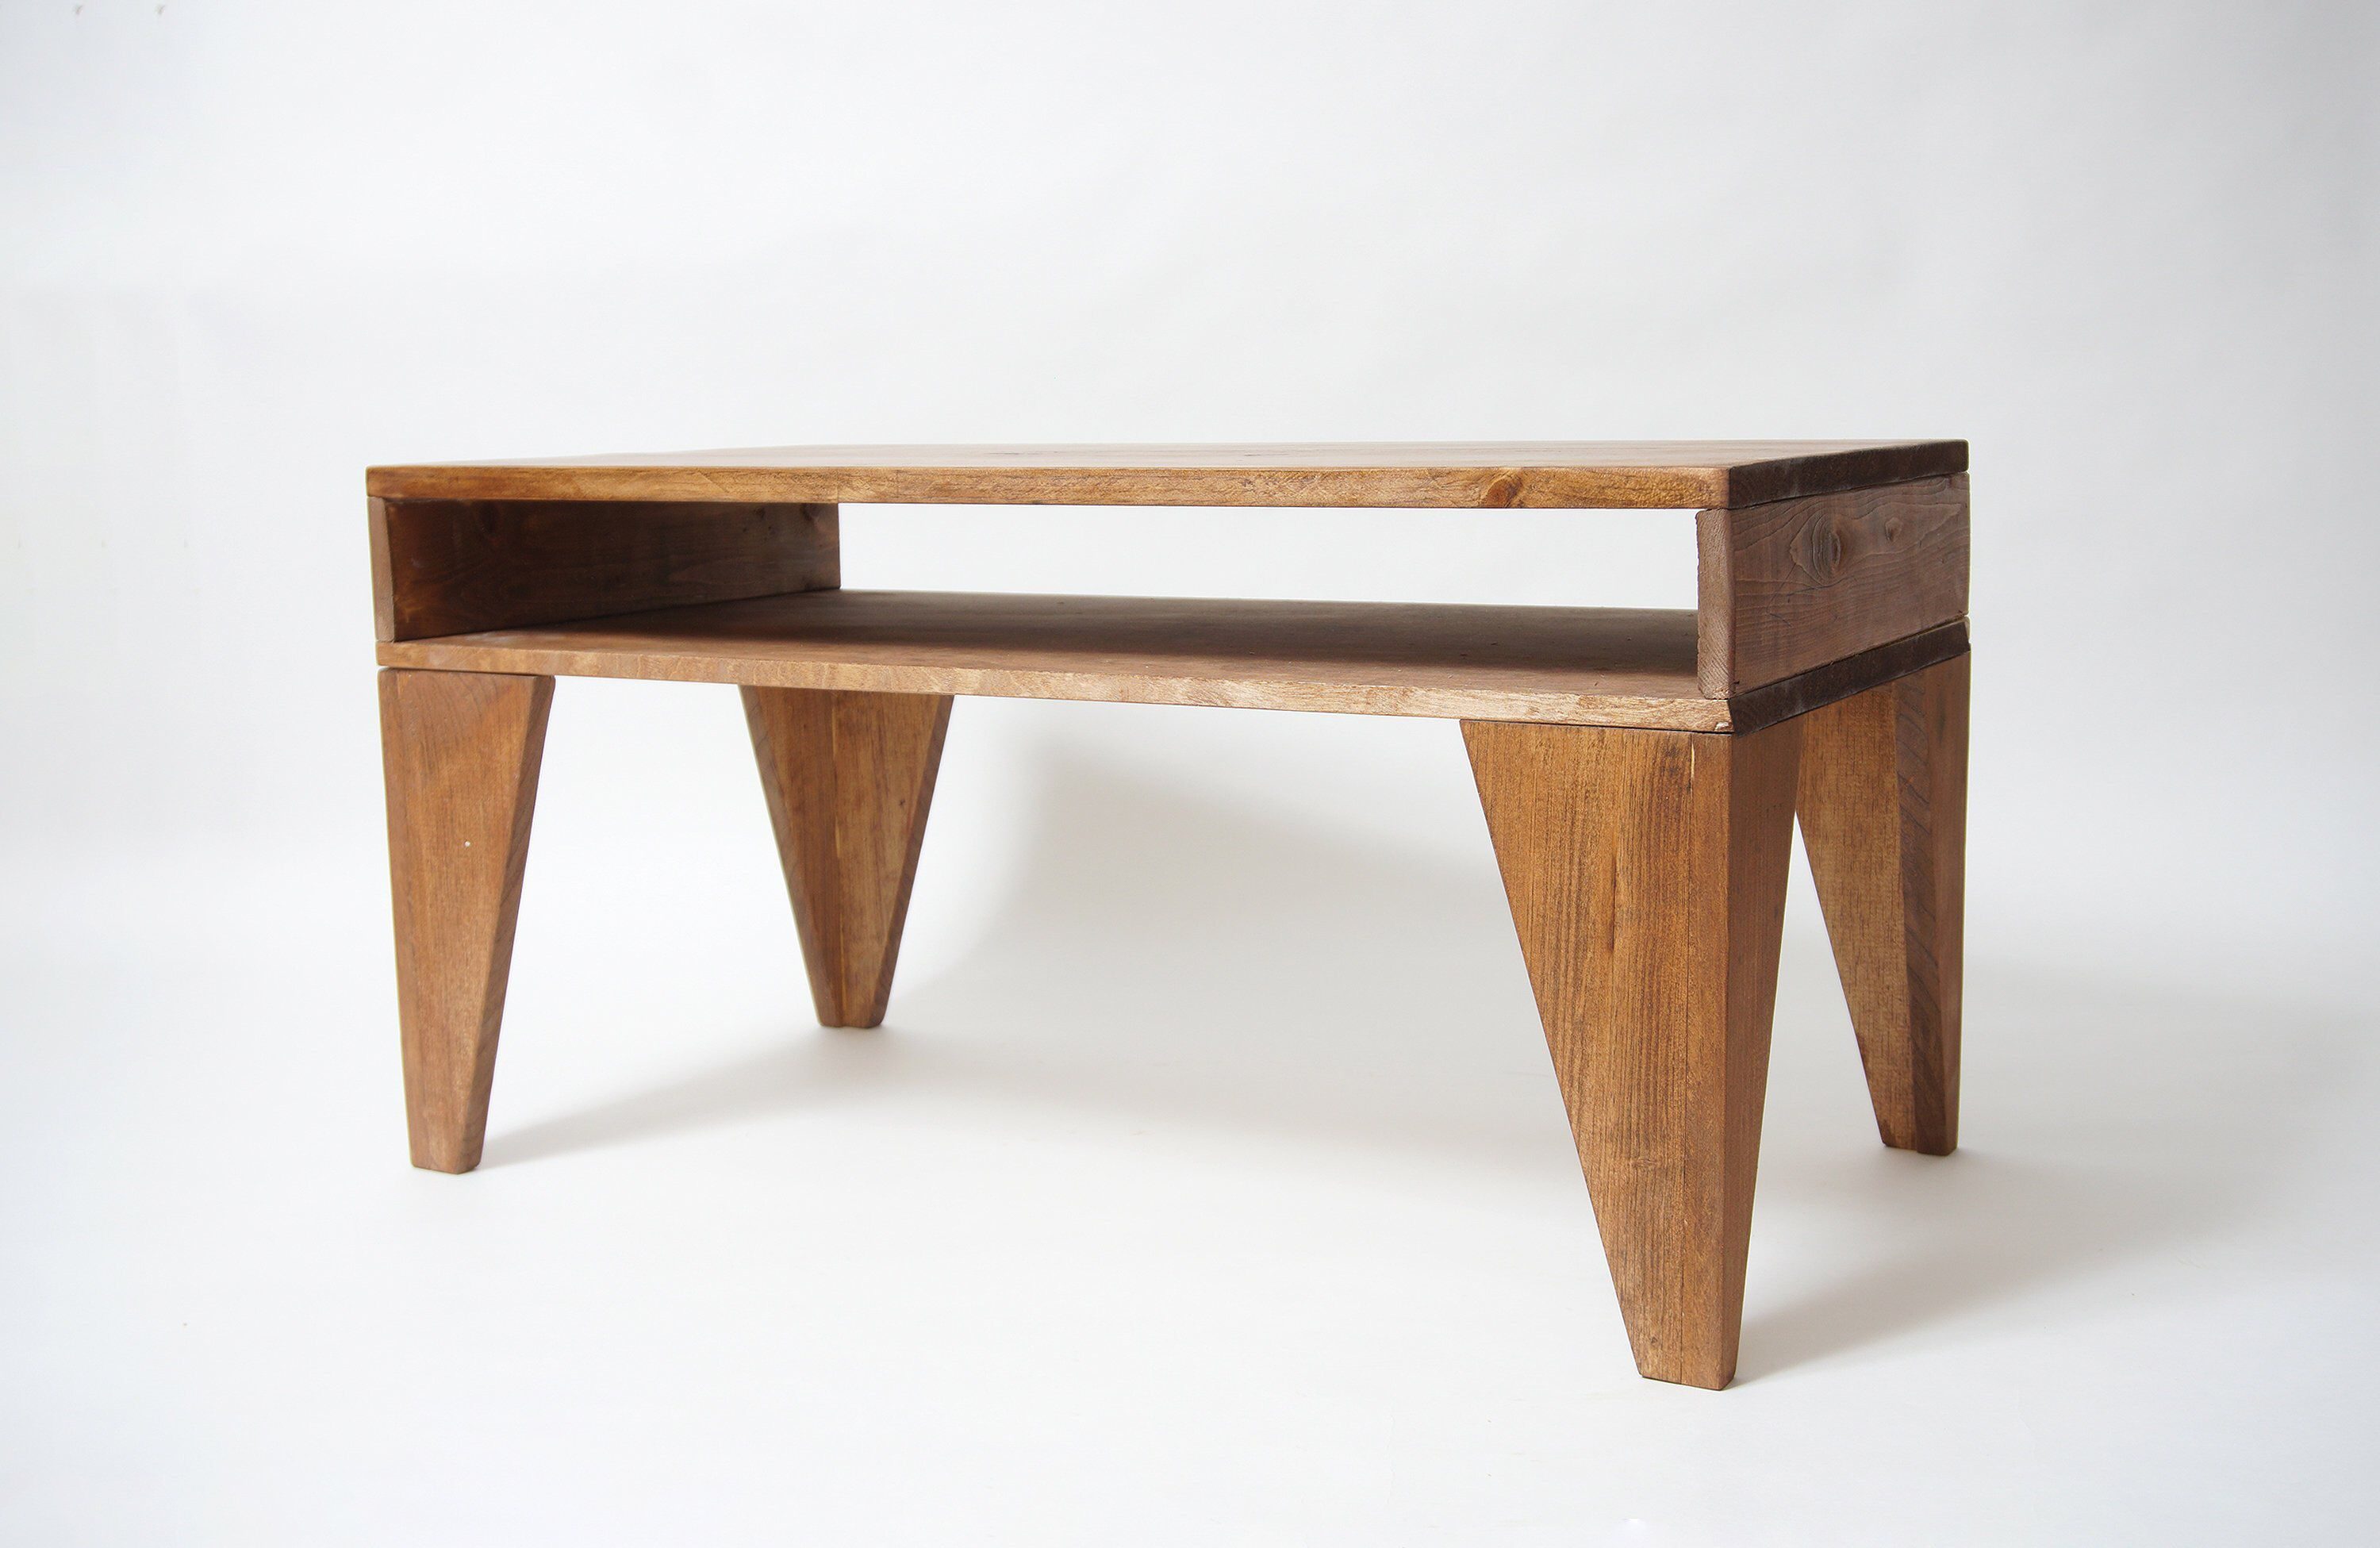 Angle Leg Coffee Table Modern Coffee Table Mid Century Table Rustic Wood Table Industrial Co Solid Wood Coffee Table Modern Coffee Tables Mid Century Table [ 1951 x 3000 Pixel ]